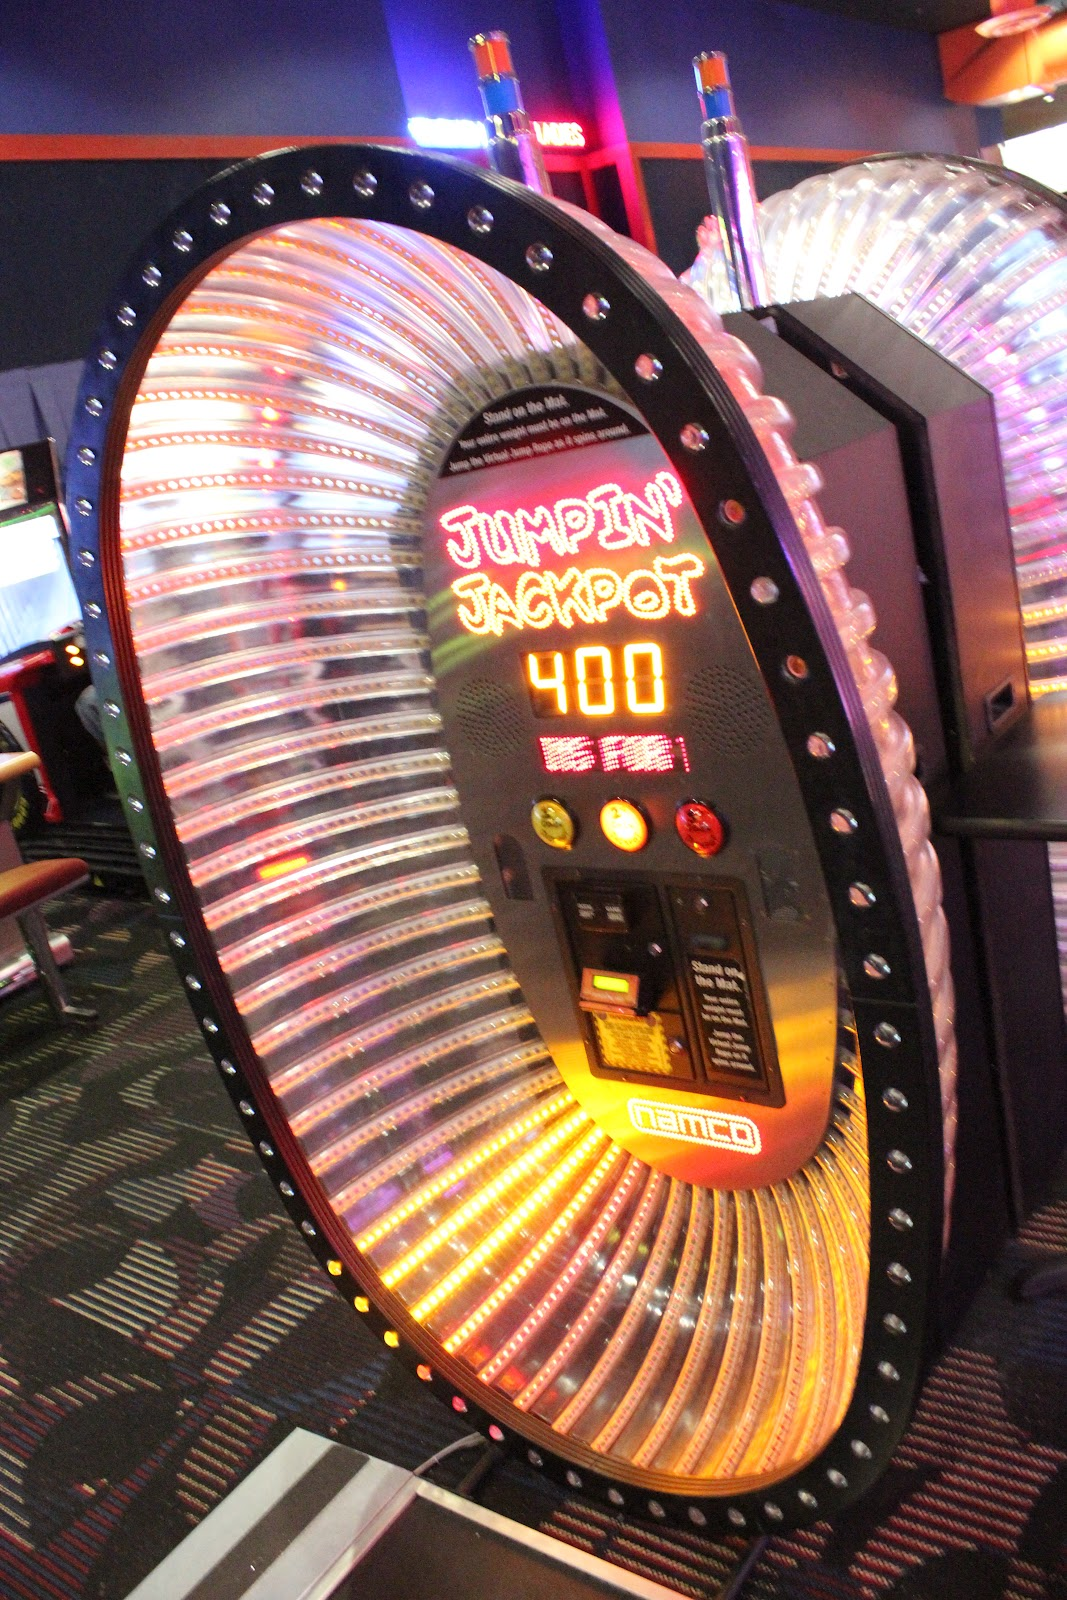 Dave and busters printable coupons january 2013 - We Tried To Choose Some Active Games Like Ddr And This Jump Rope Game We Had A Great Time Getting Our Heart Rate Up And Playing With Camera Settings In An